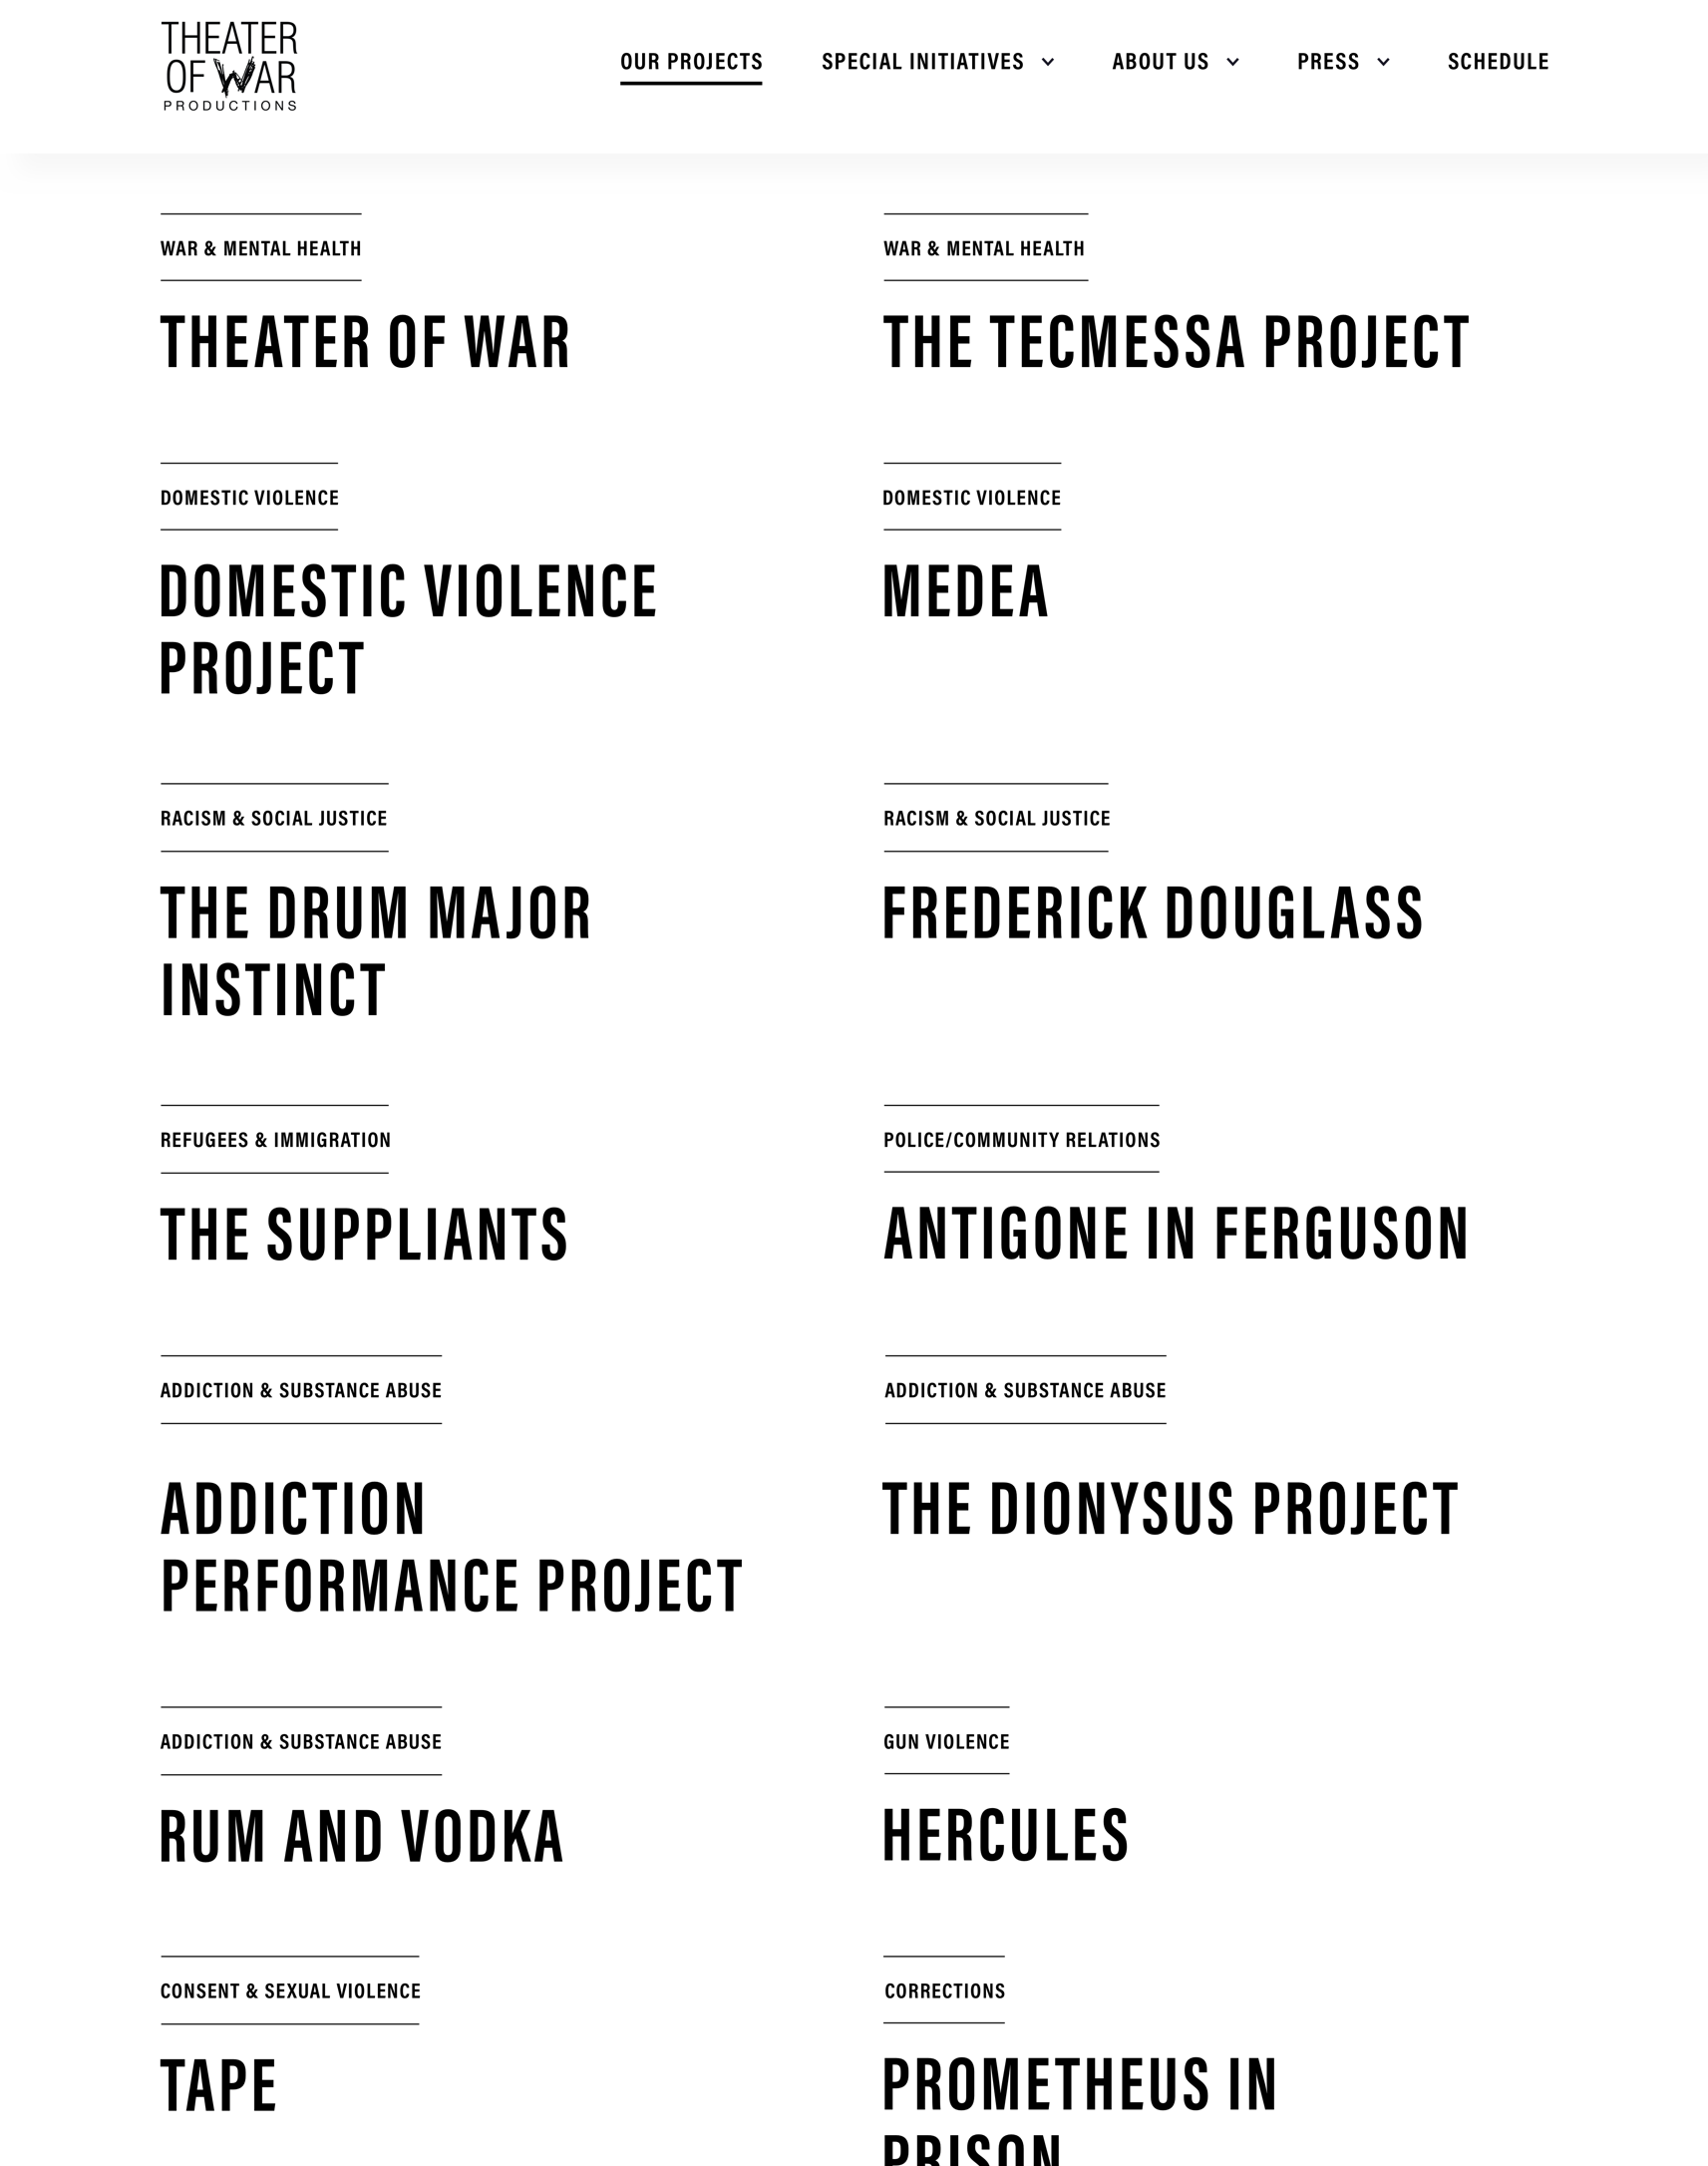 Theater of War Website Design showing text list of projects